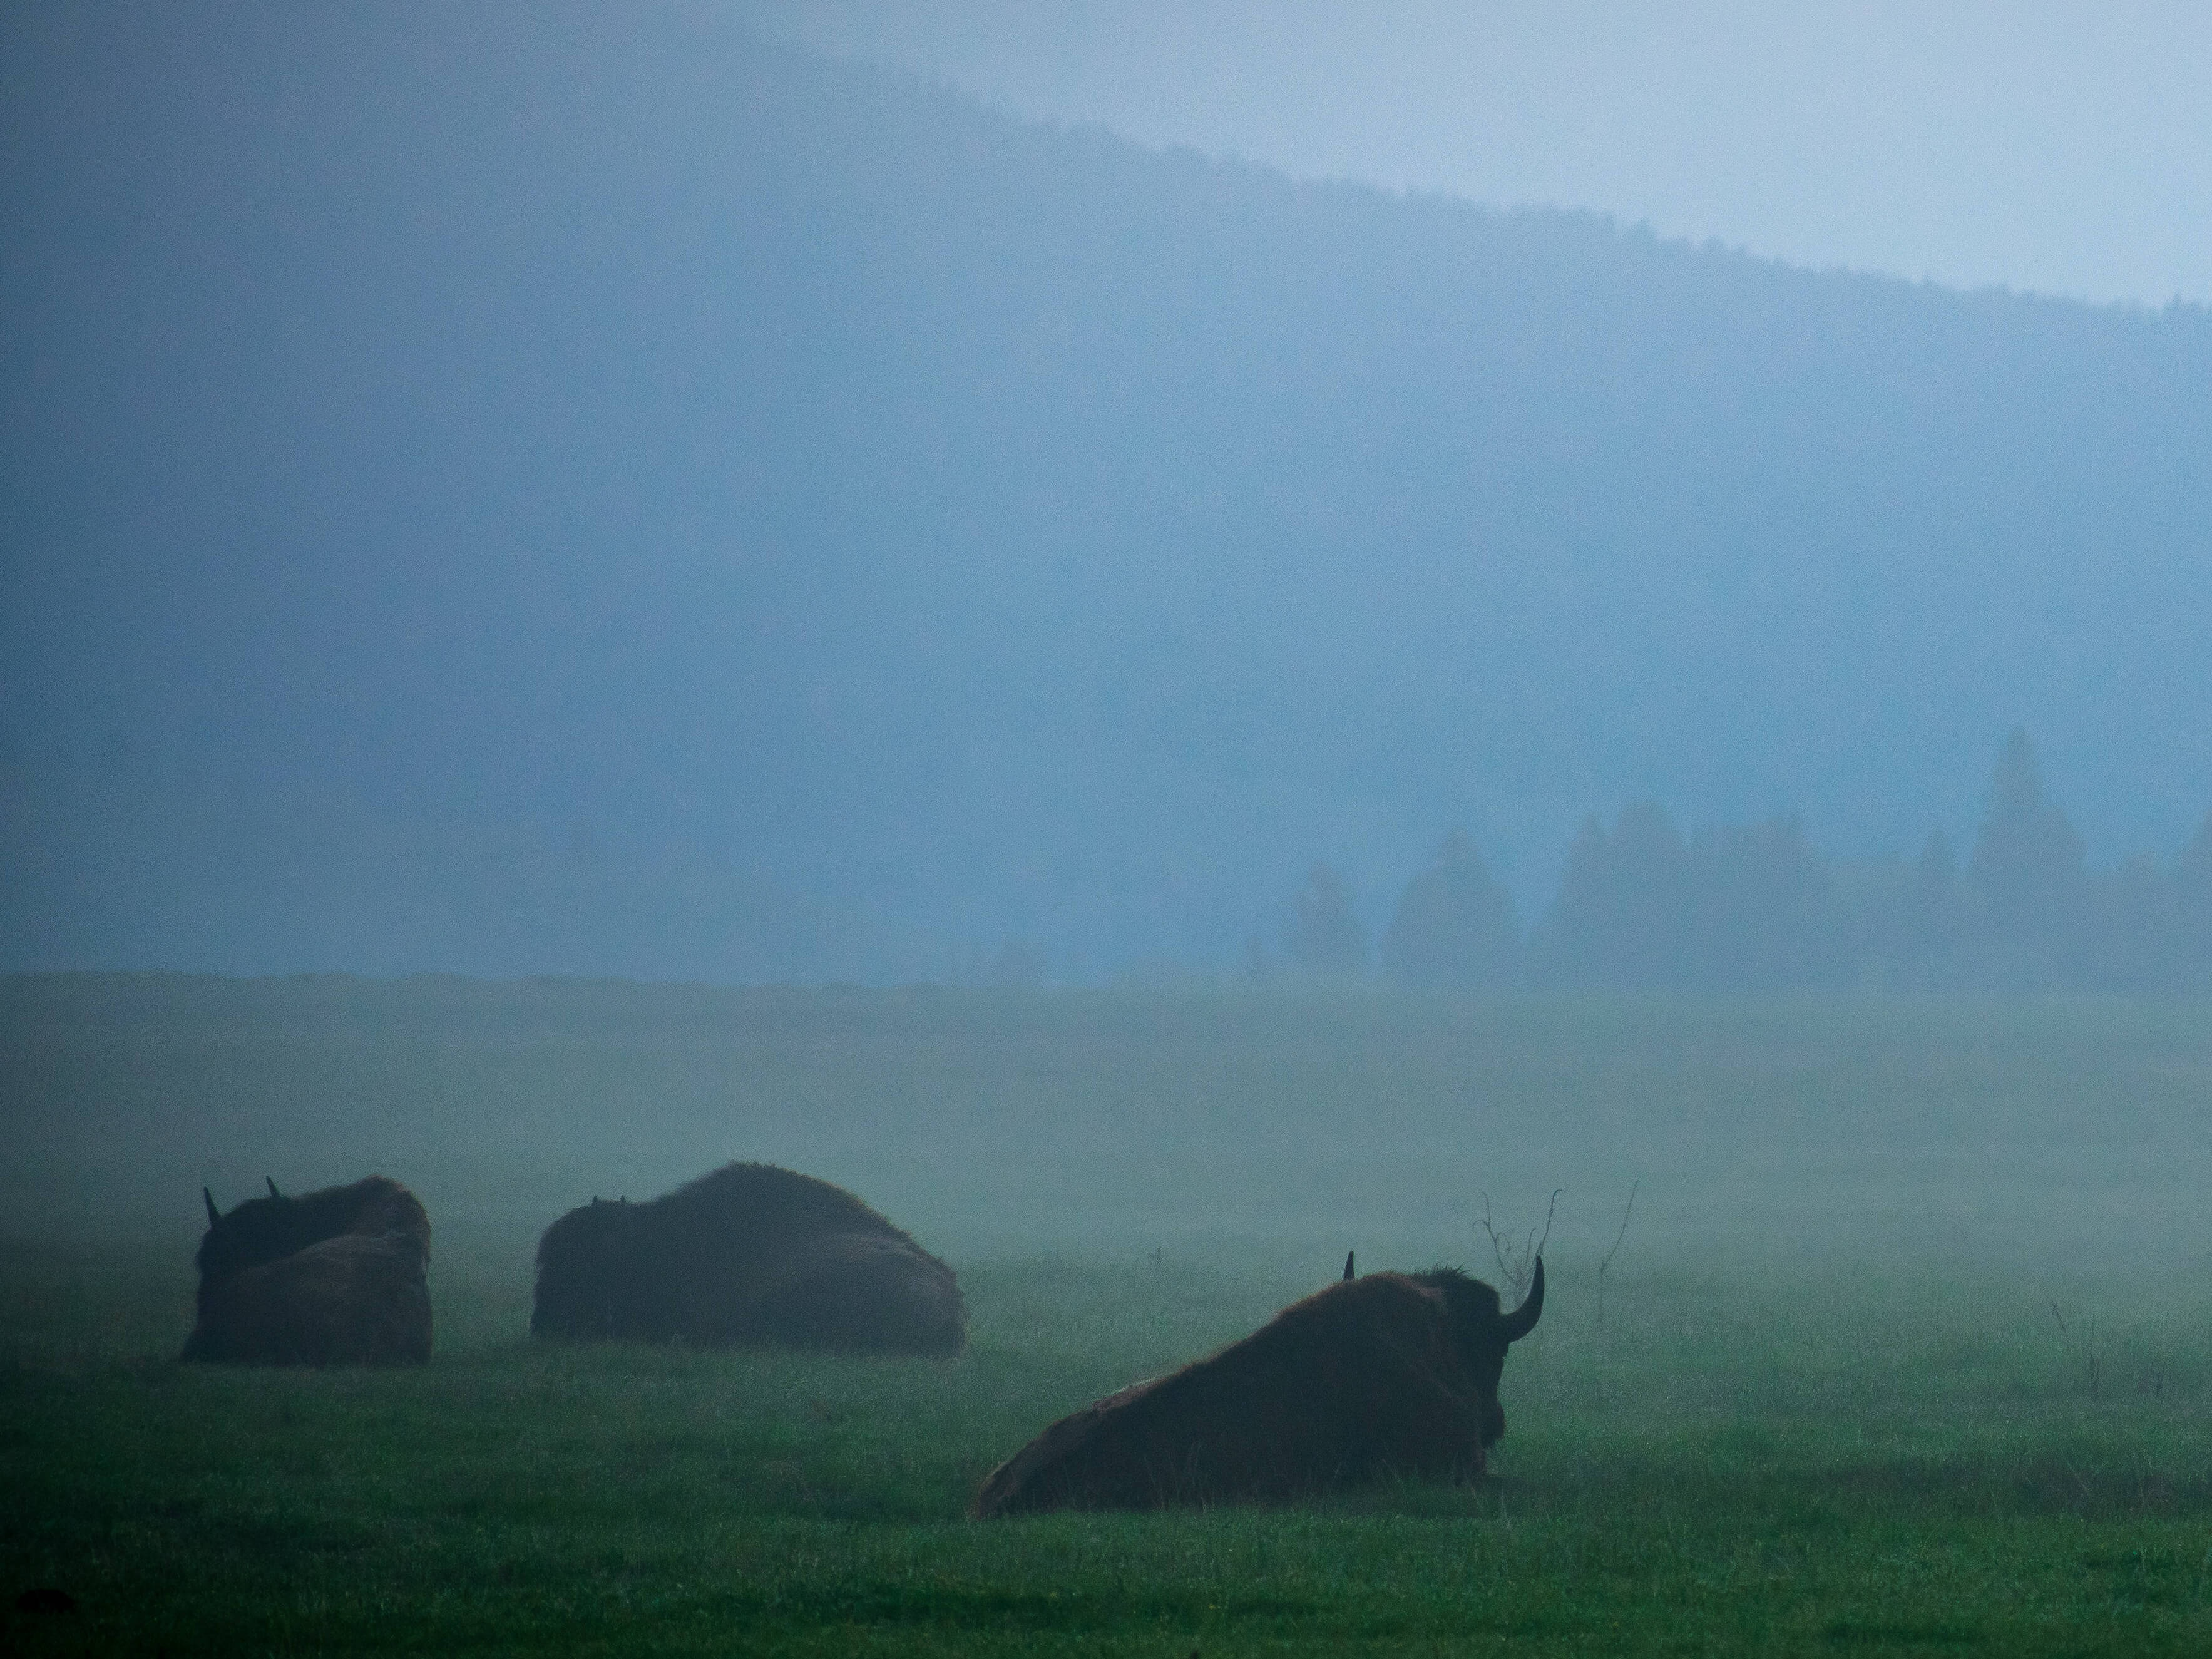 Bison sitting in grass foggy day